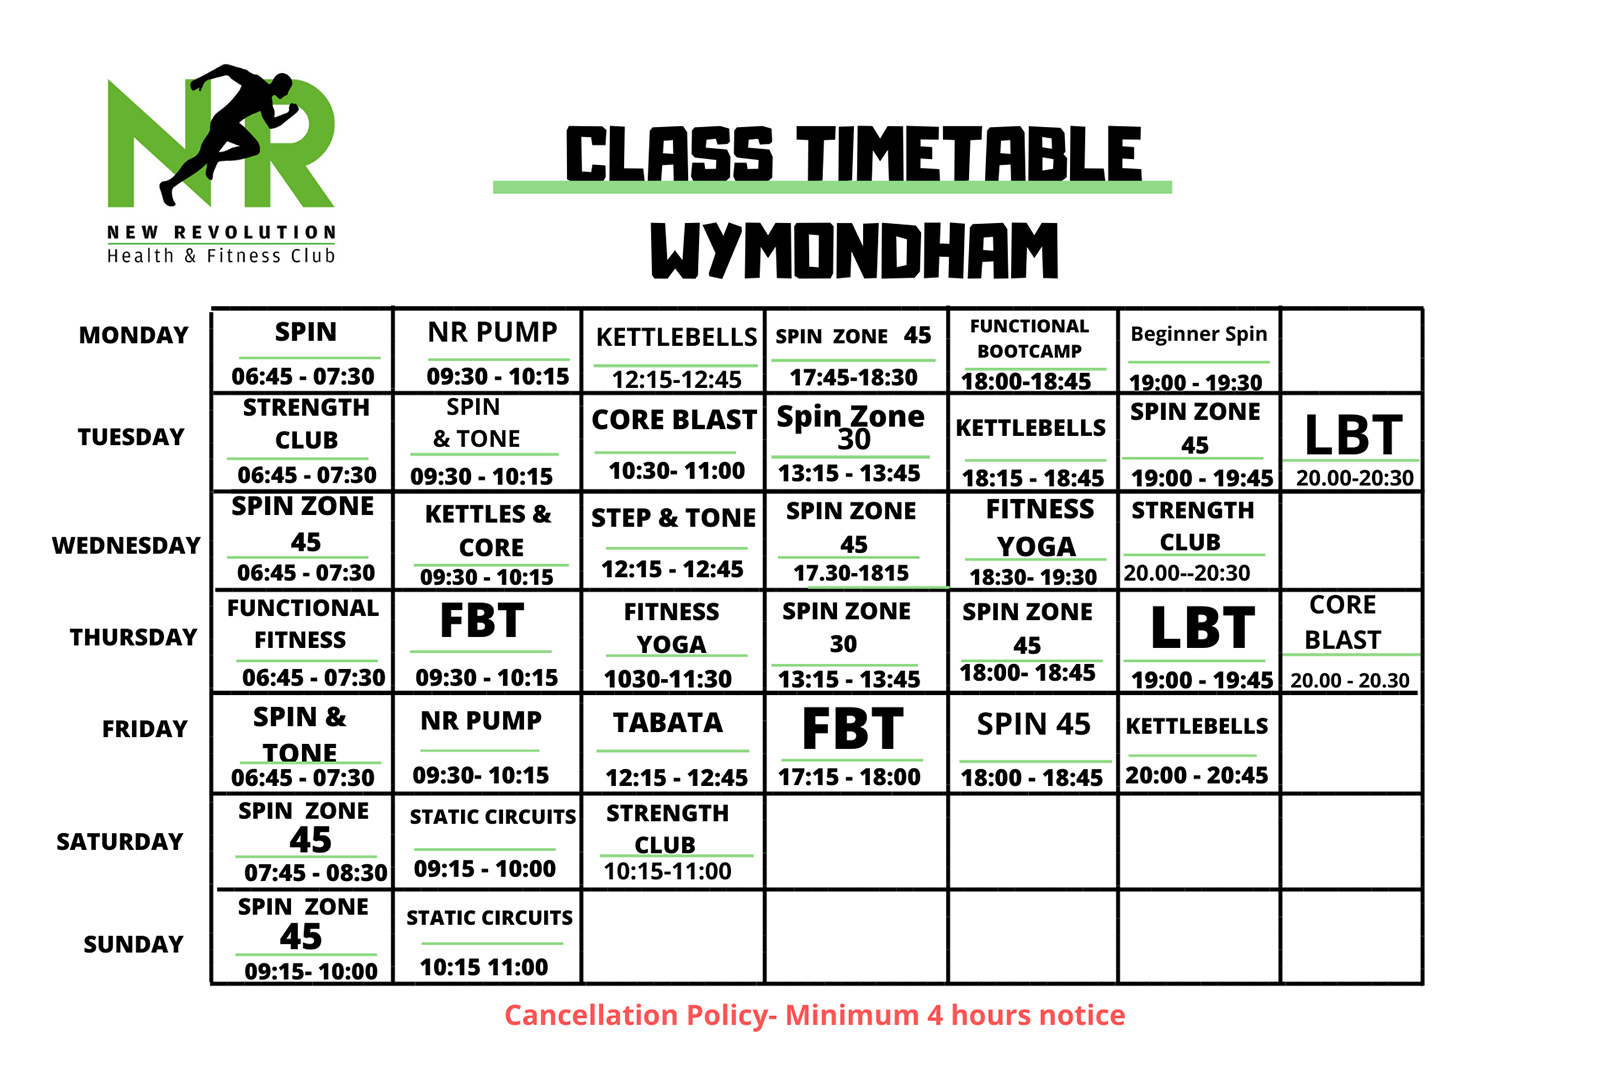 NEW Wymondham Timetable - July 2020